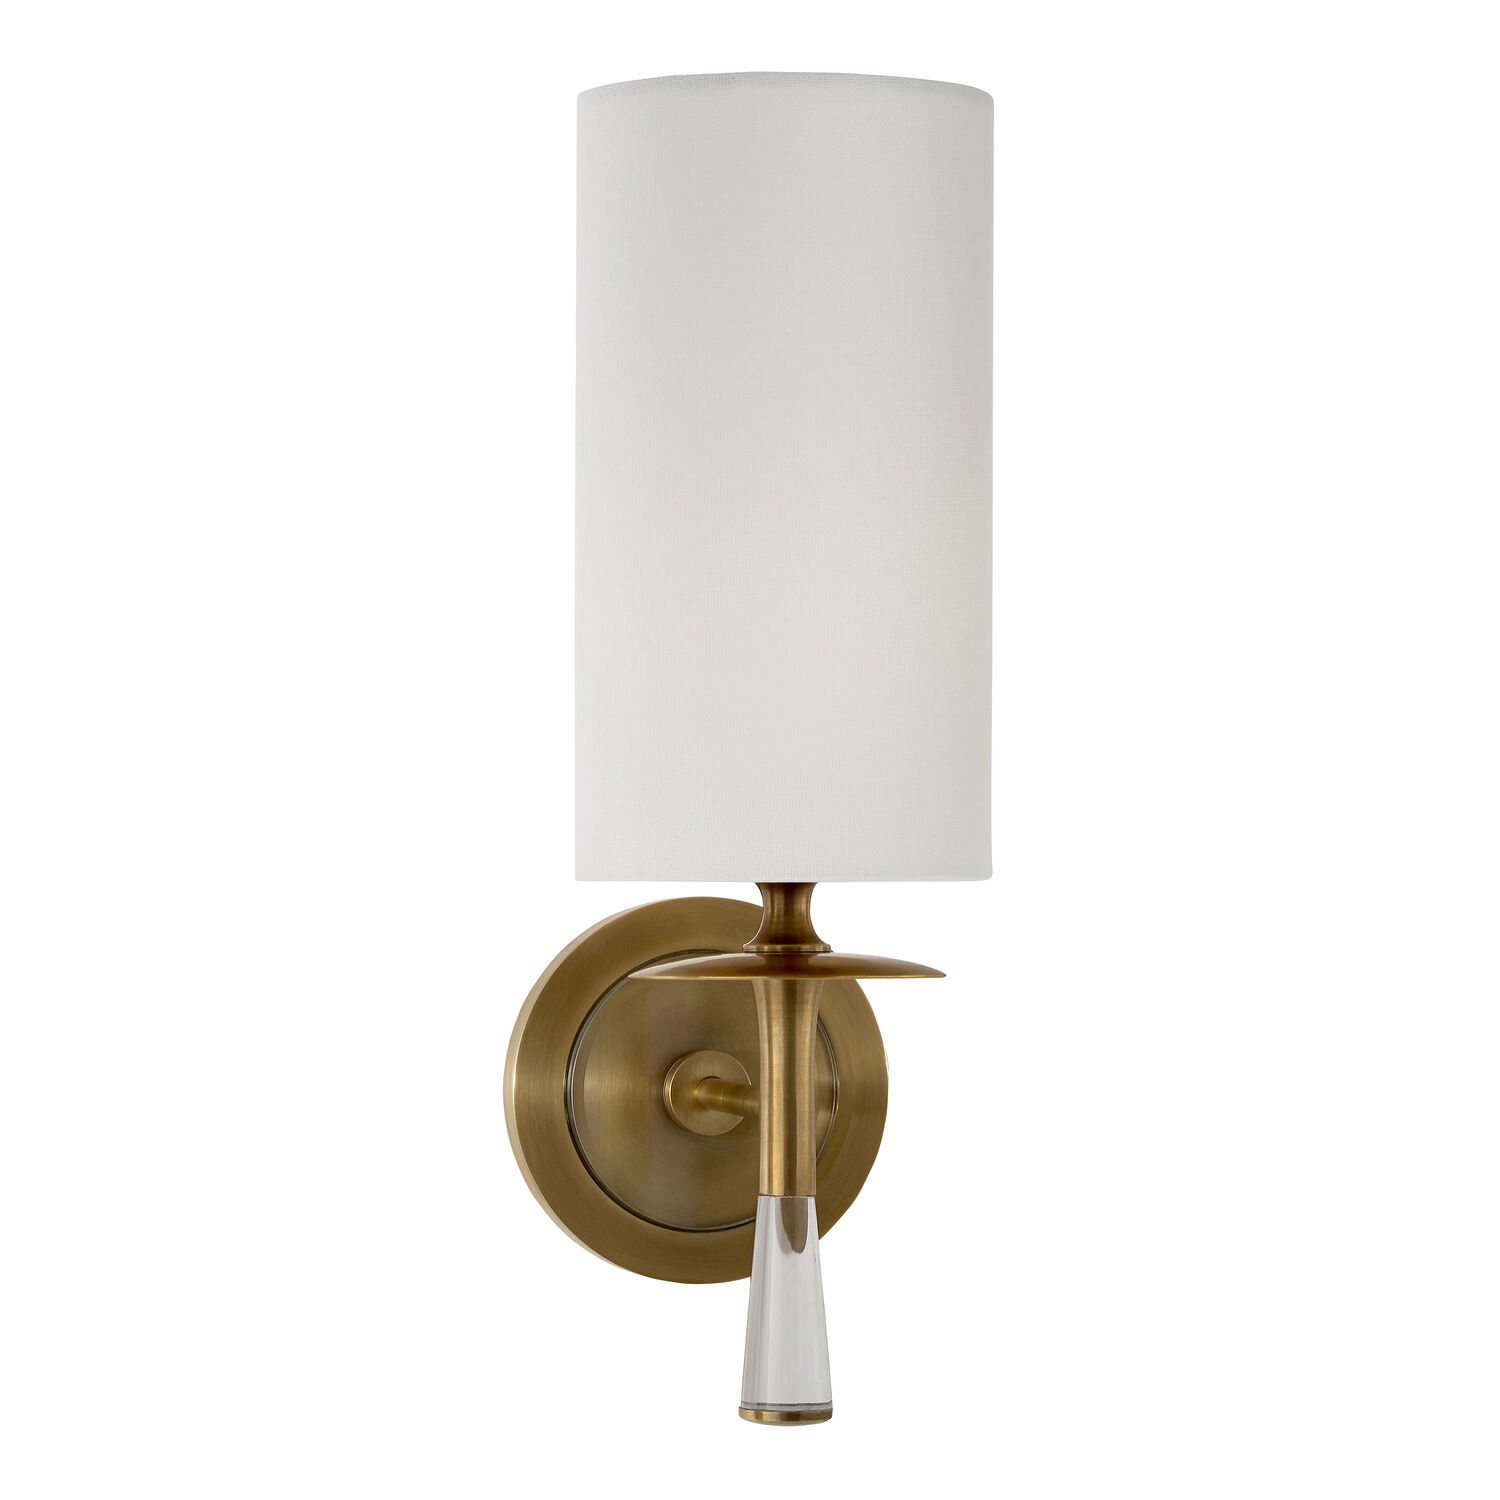 Drunmore Single Sconce with Crystal and Linen Shade